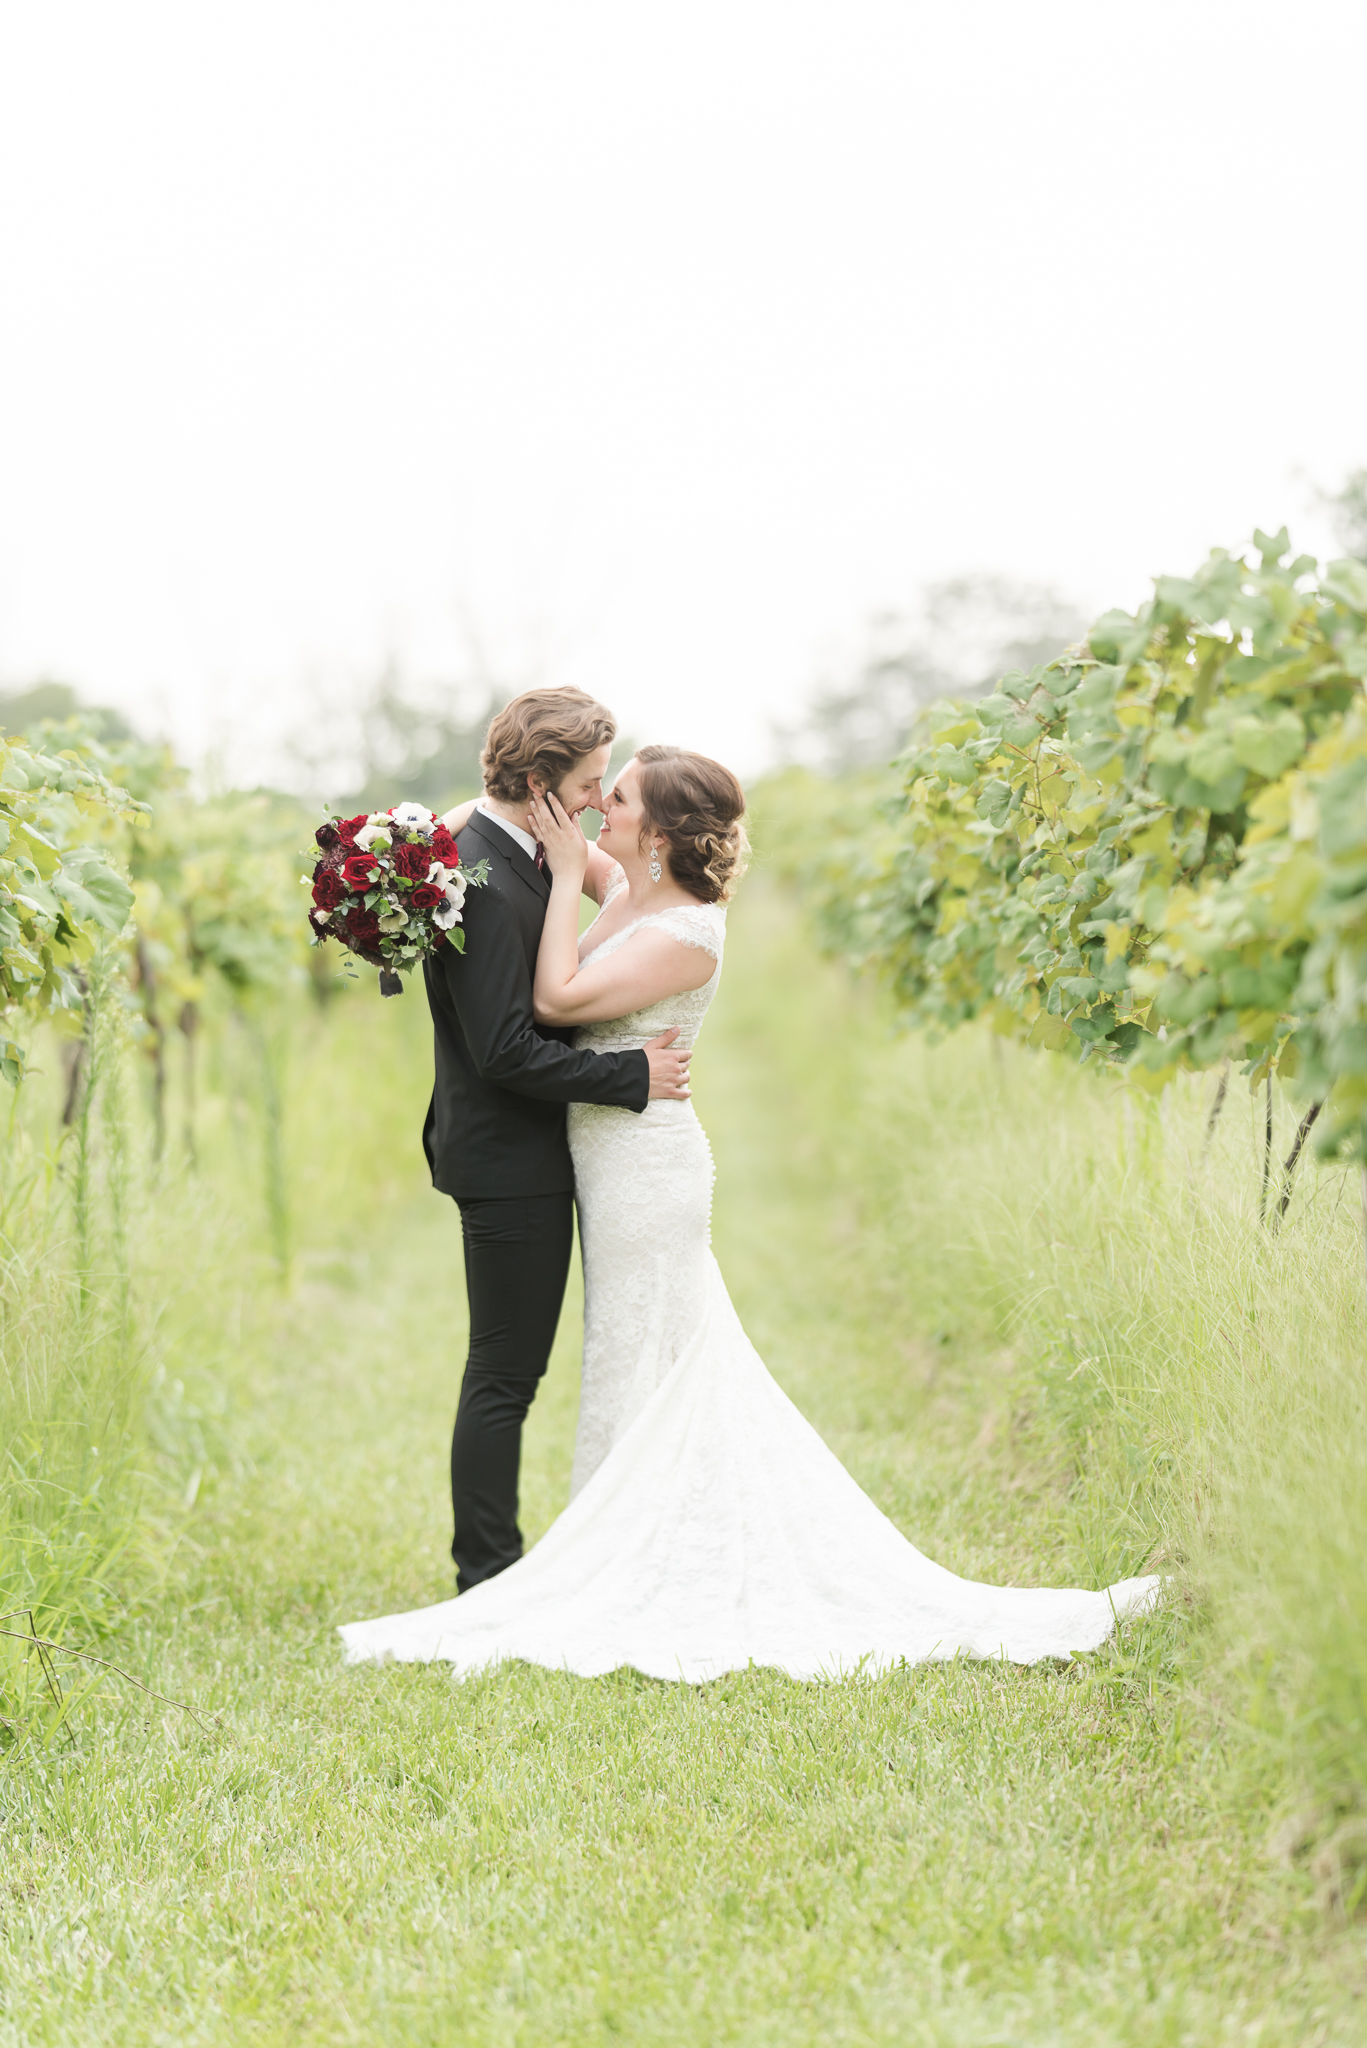 How to have a stress free wedding